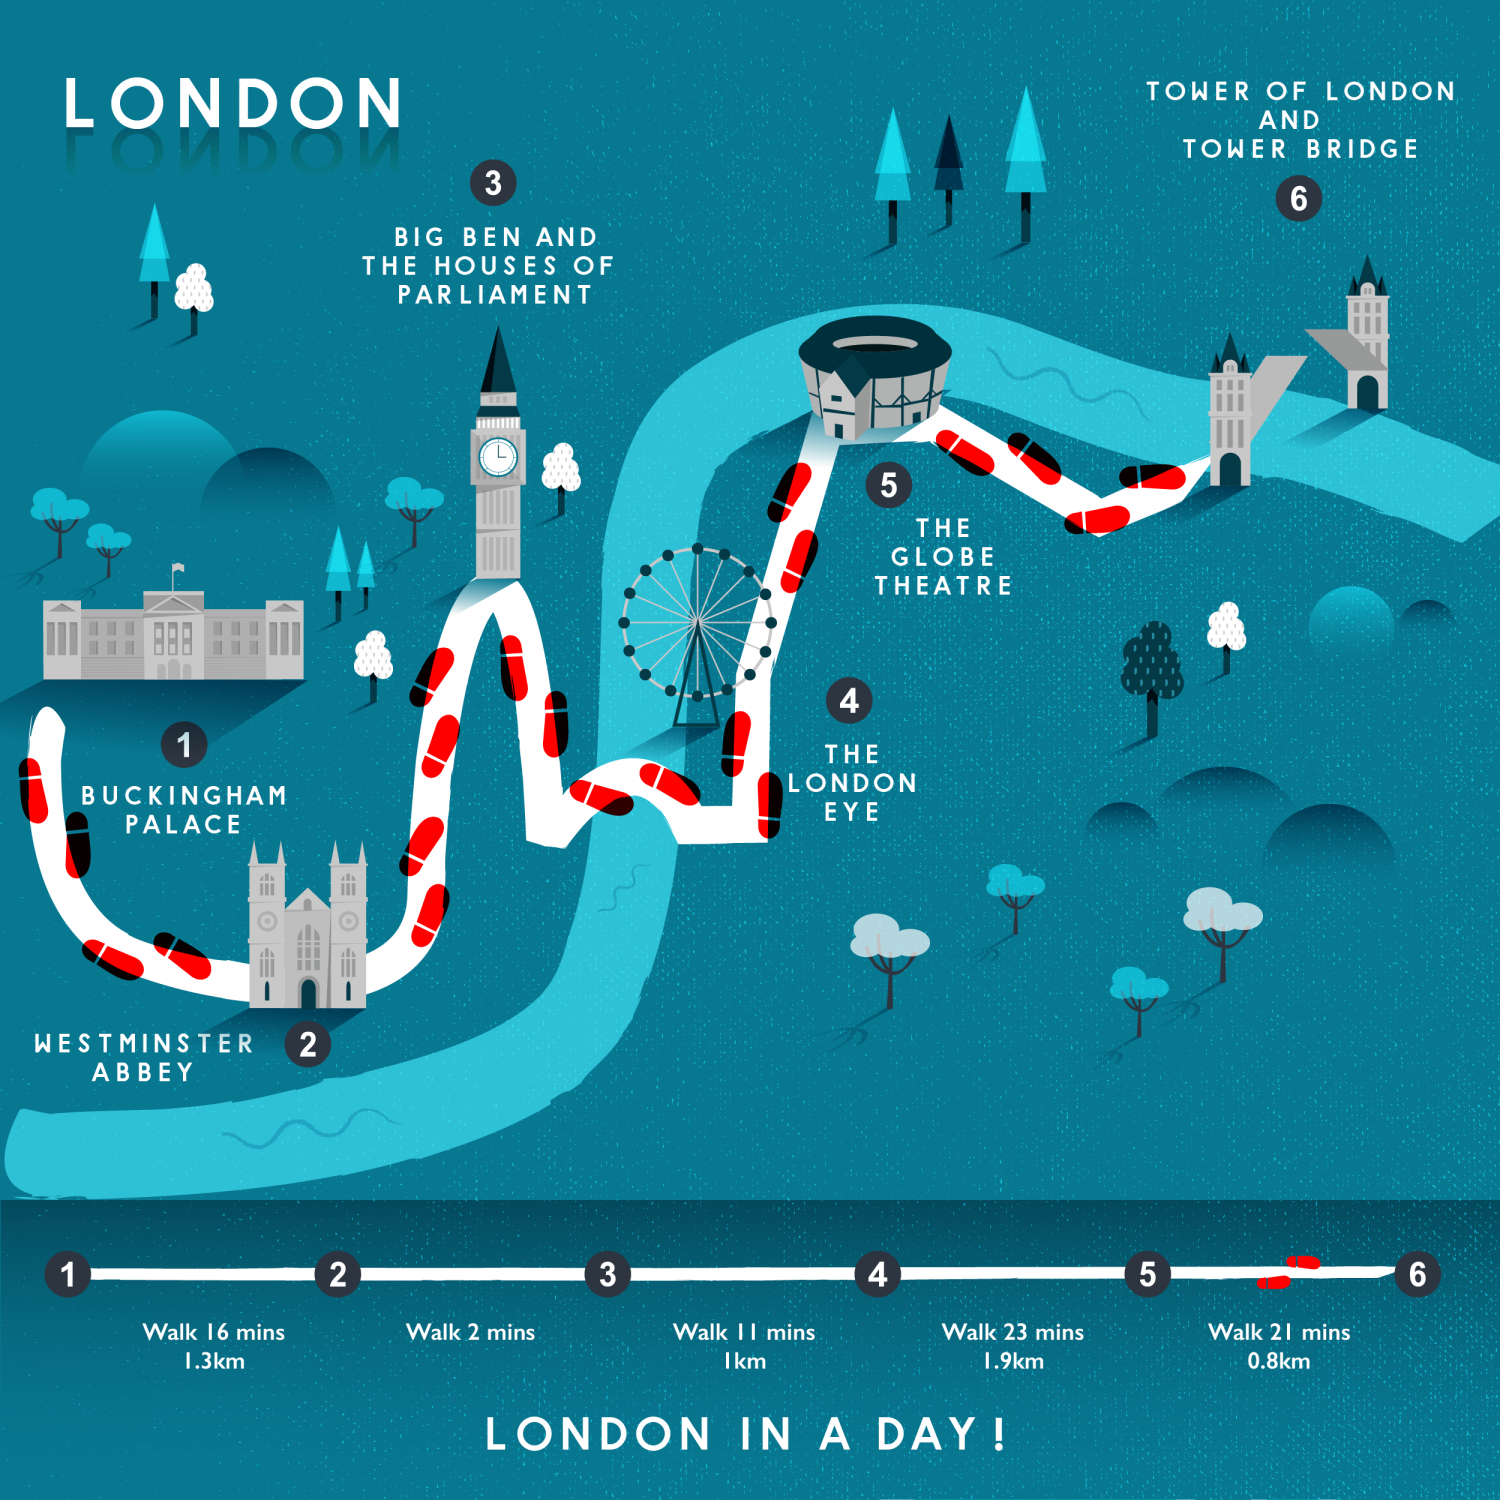 London walking tour in a day